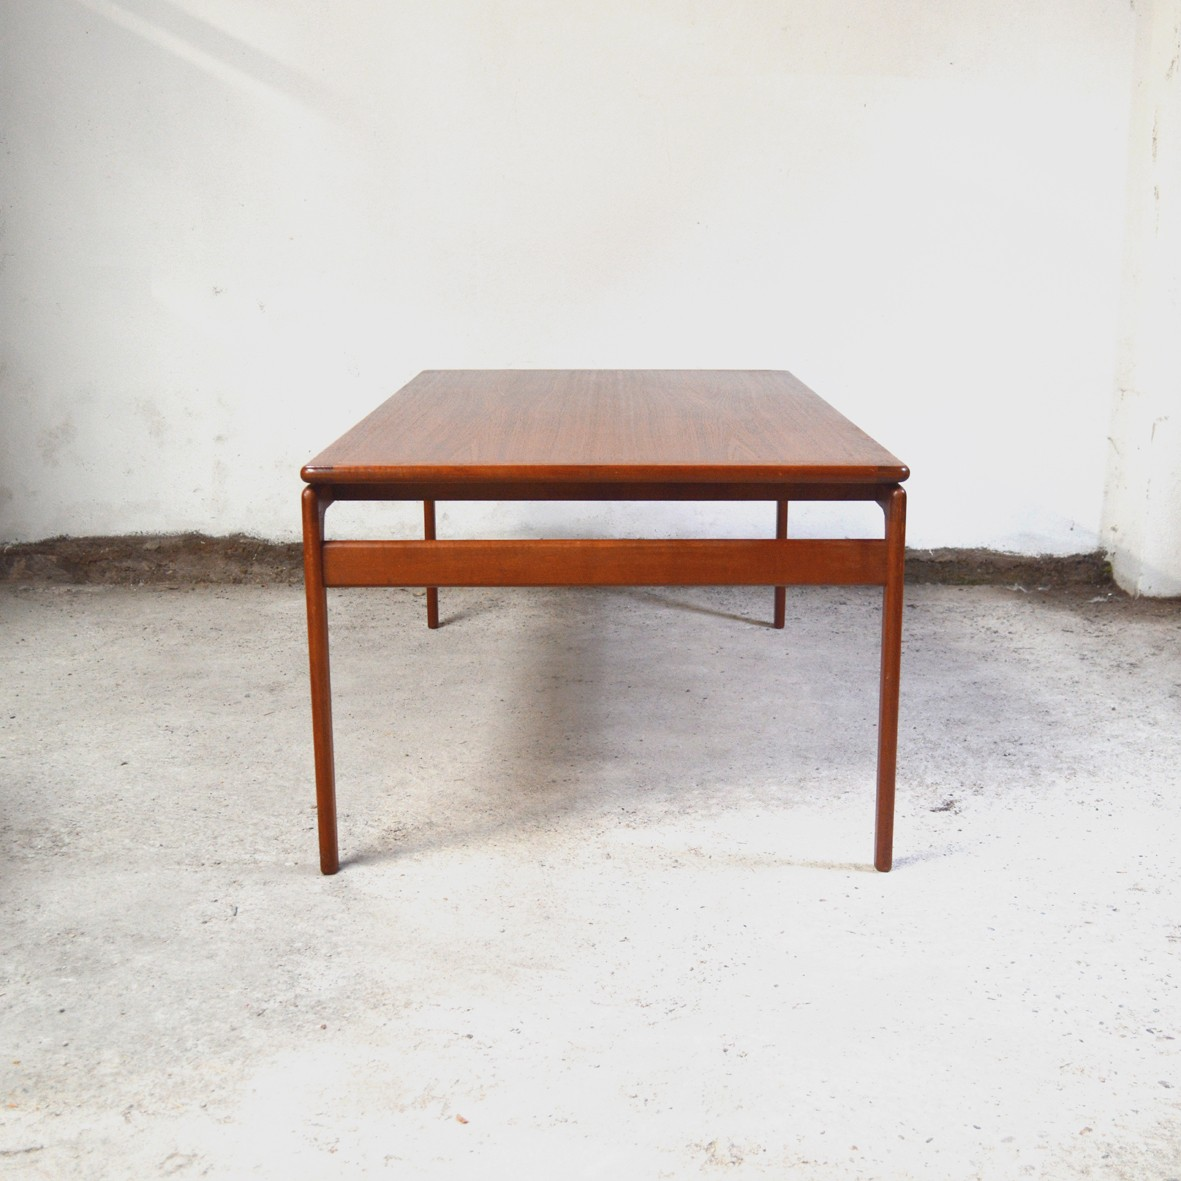 Antique Teak Coffee Table: Vintage Danish Teak Coffee Table For Trioh